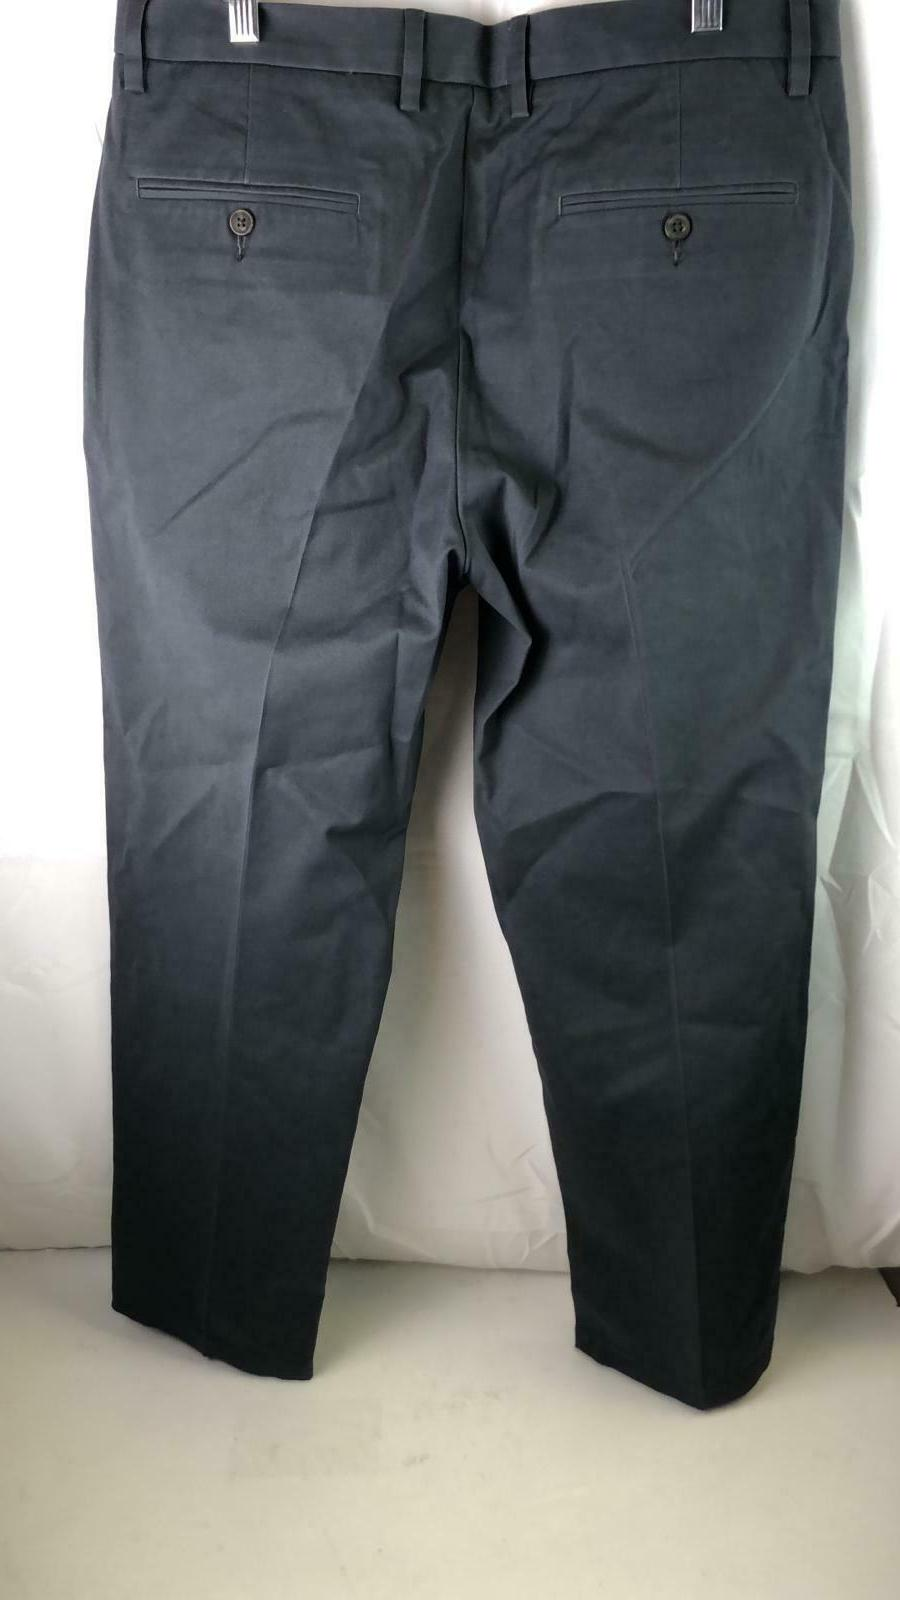 Goodthreads mens straight pants size 35X28